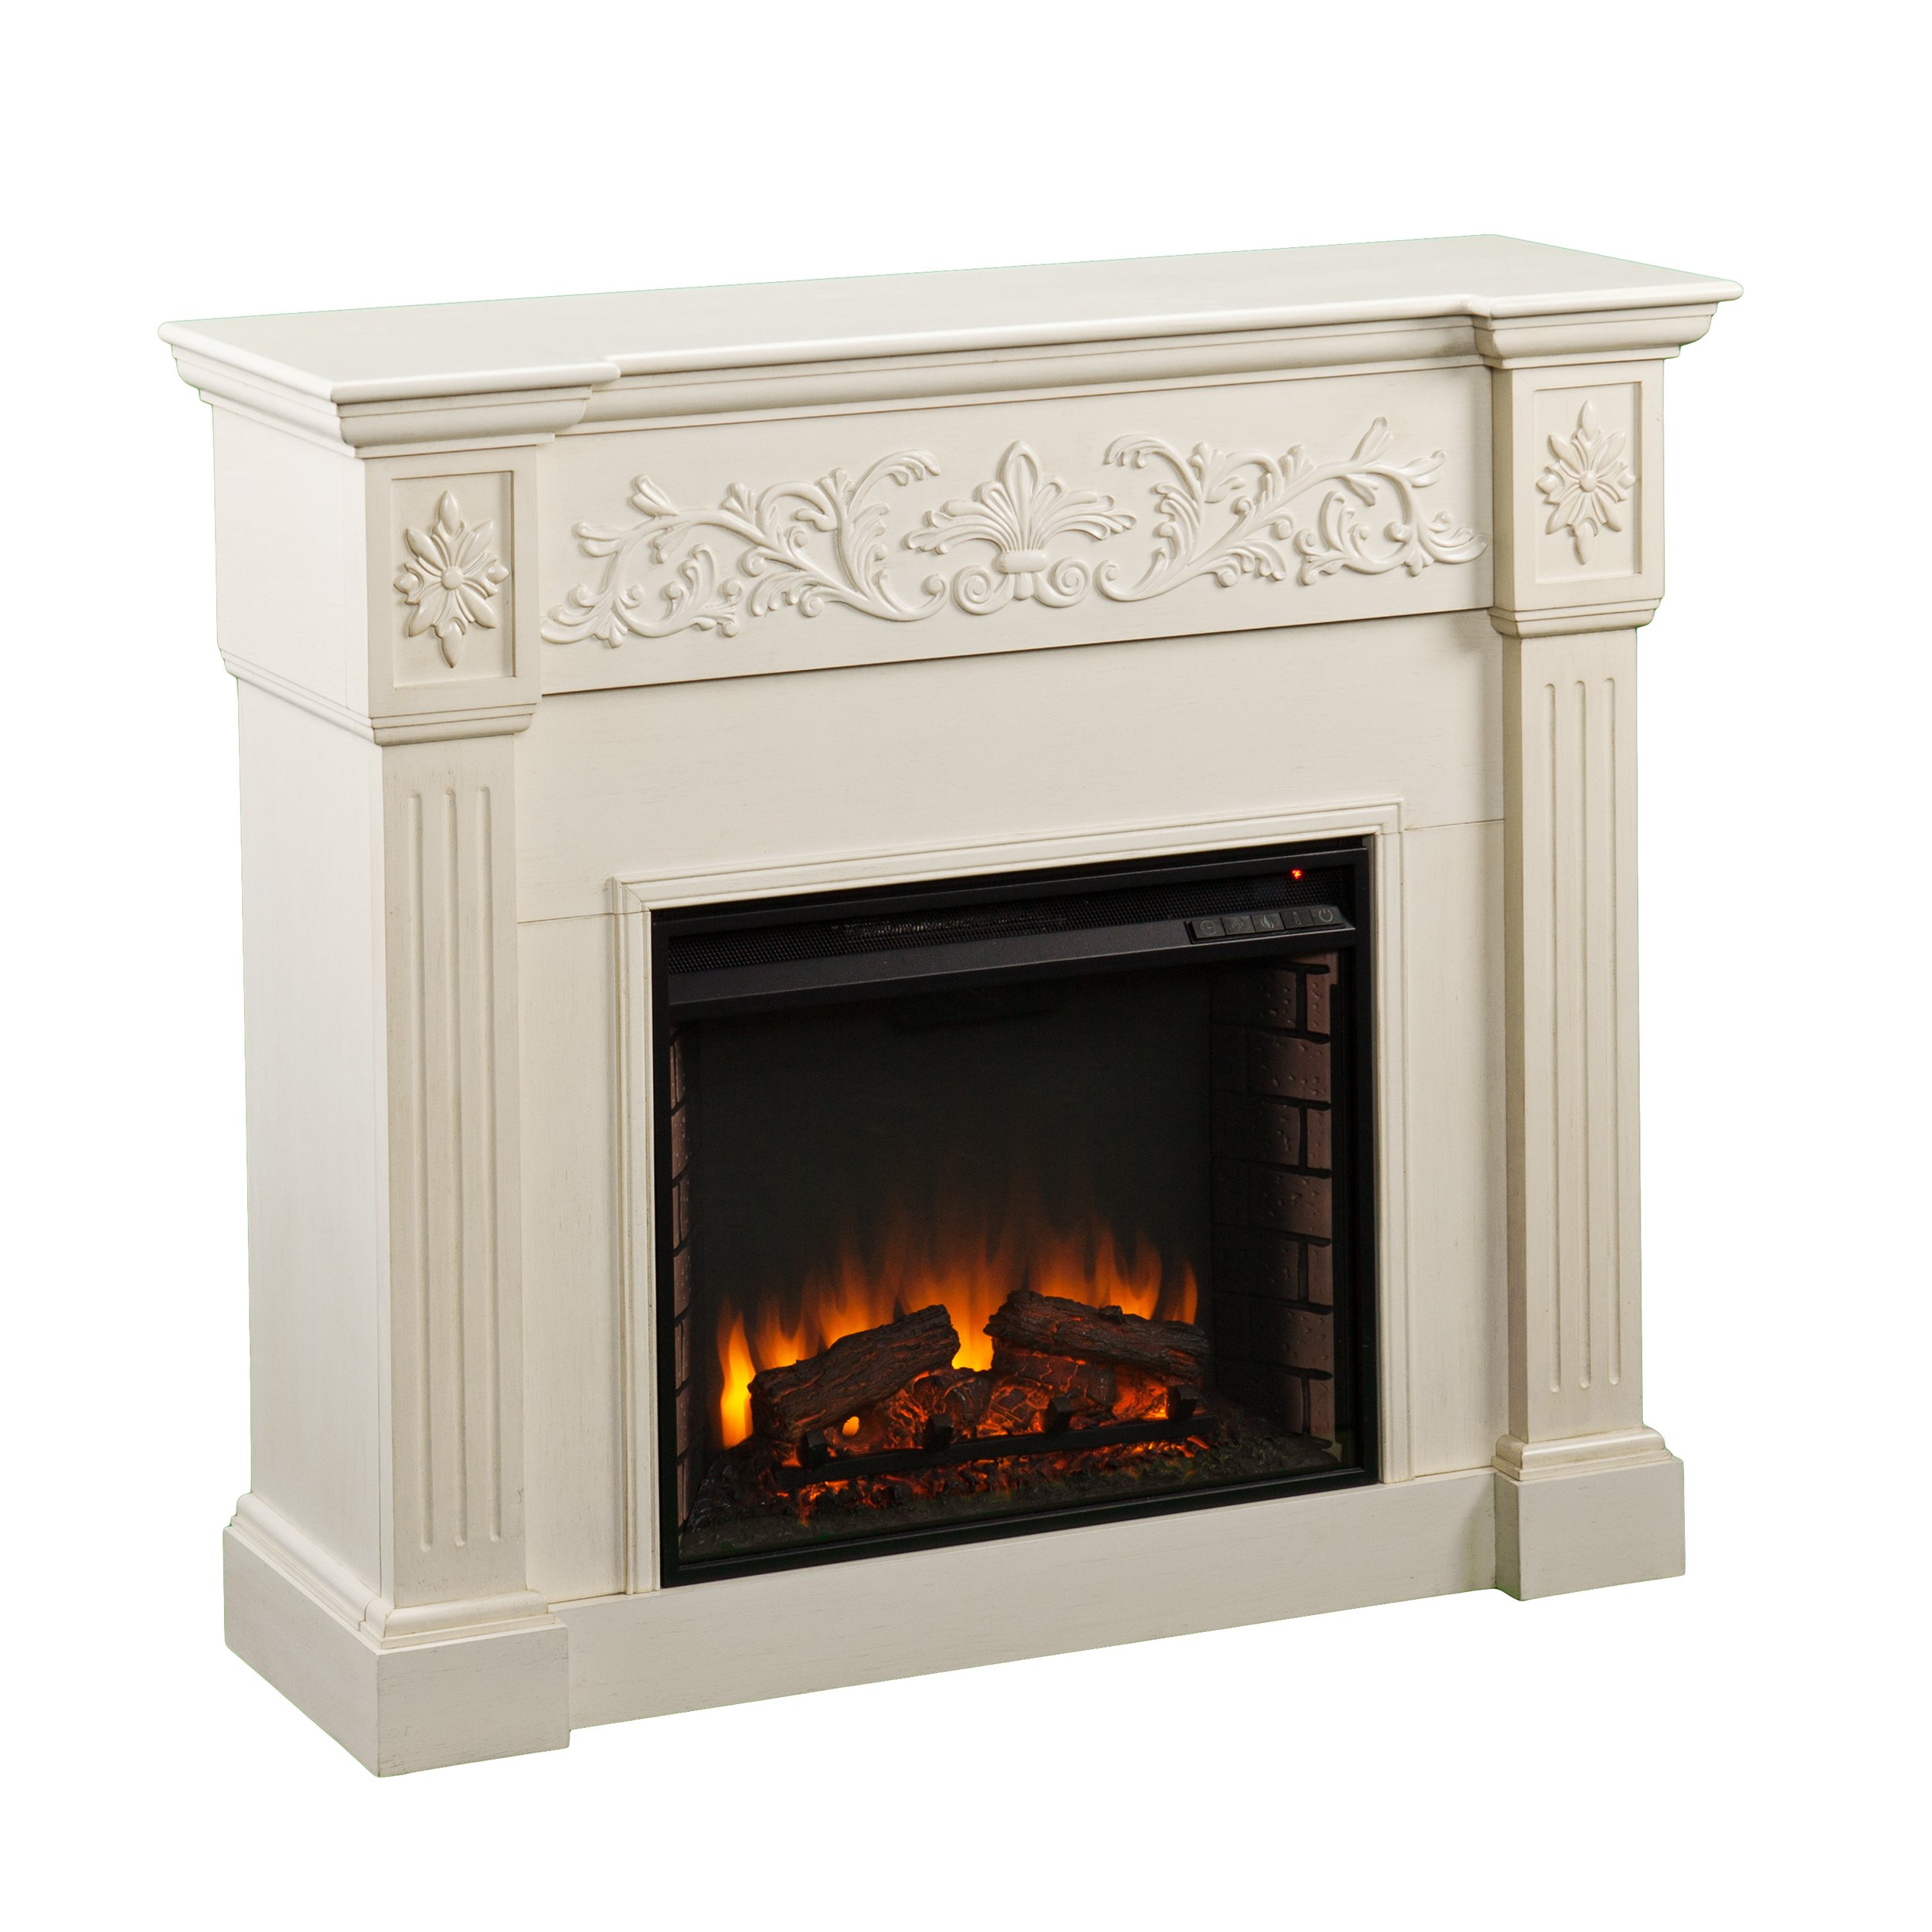 Southern Enterprises Calvert Carved Electric Fireplace, Ivory Finish with Brushed Texture by Southern Enterprises